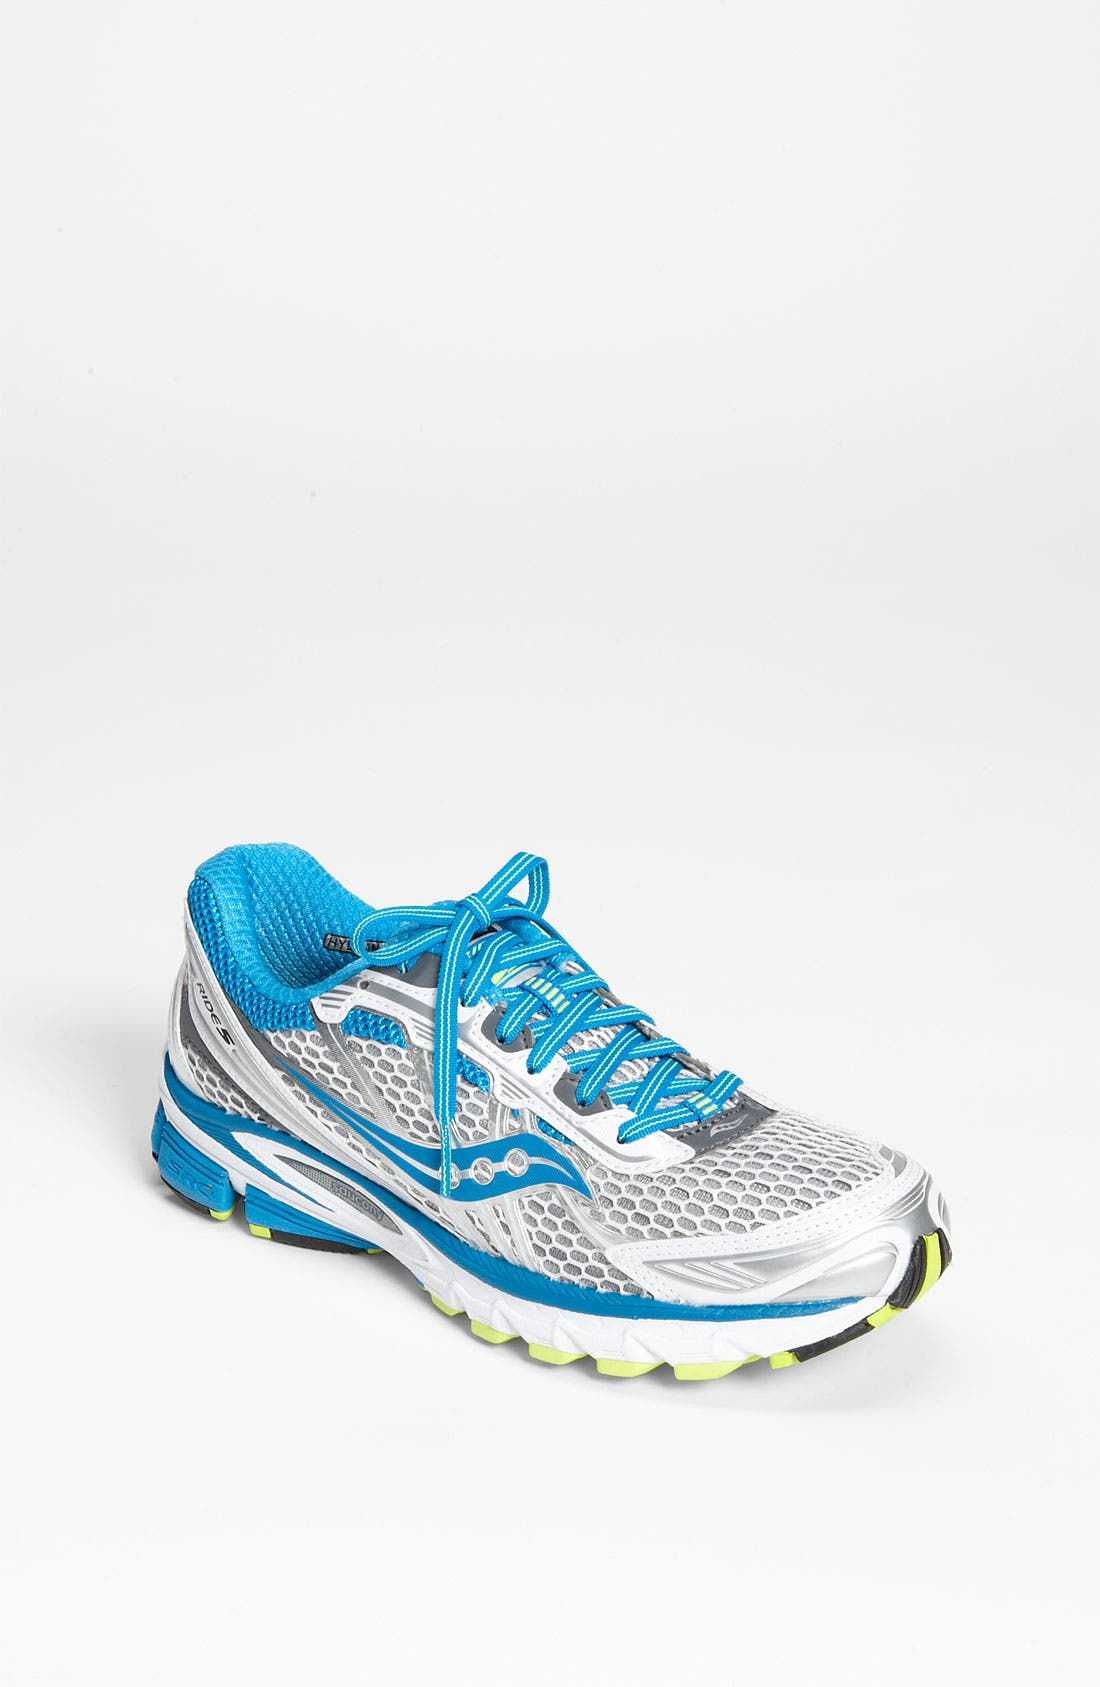 Alternate Image 1 Selected - Saucony 'ProGrid Ride 5' Running Shoe (Women)